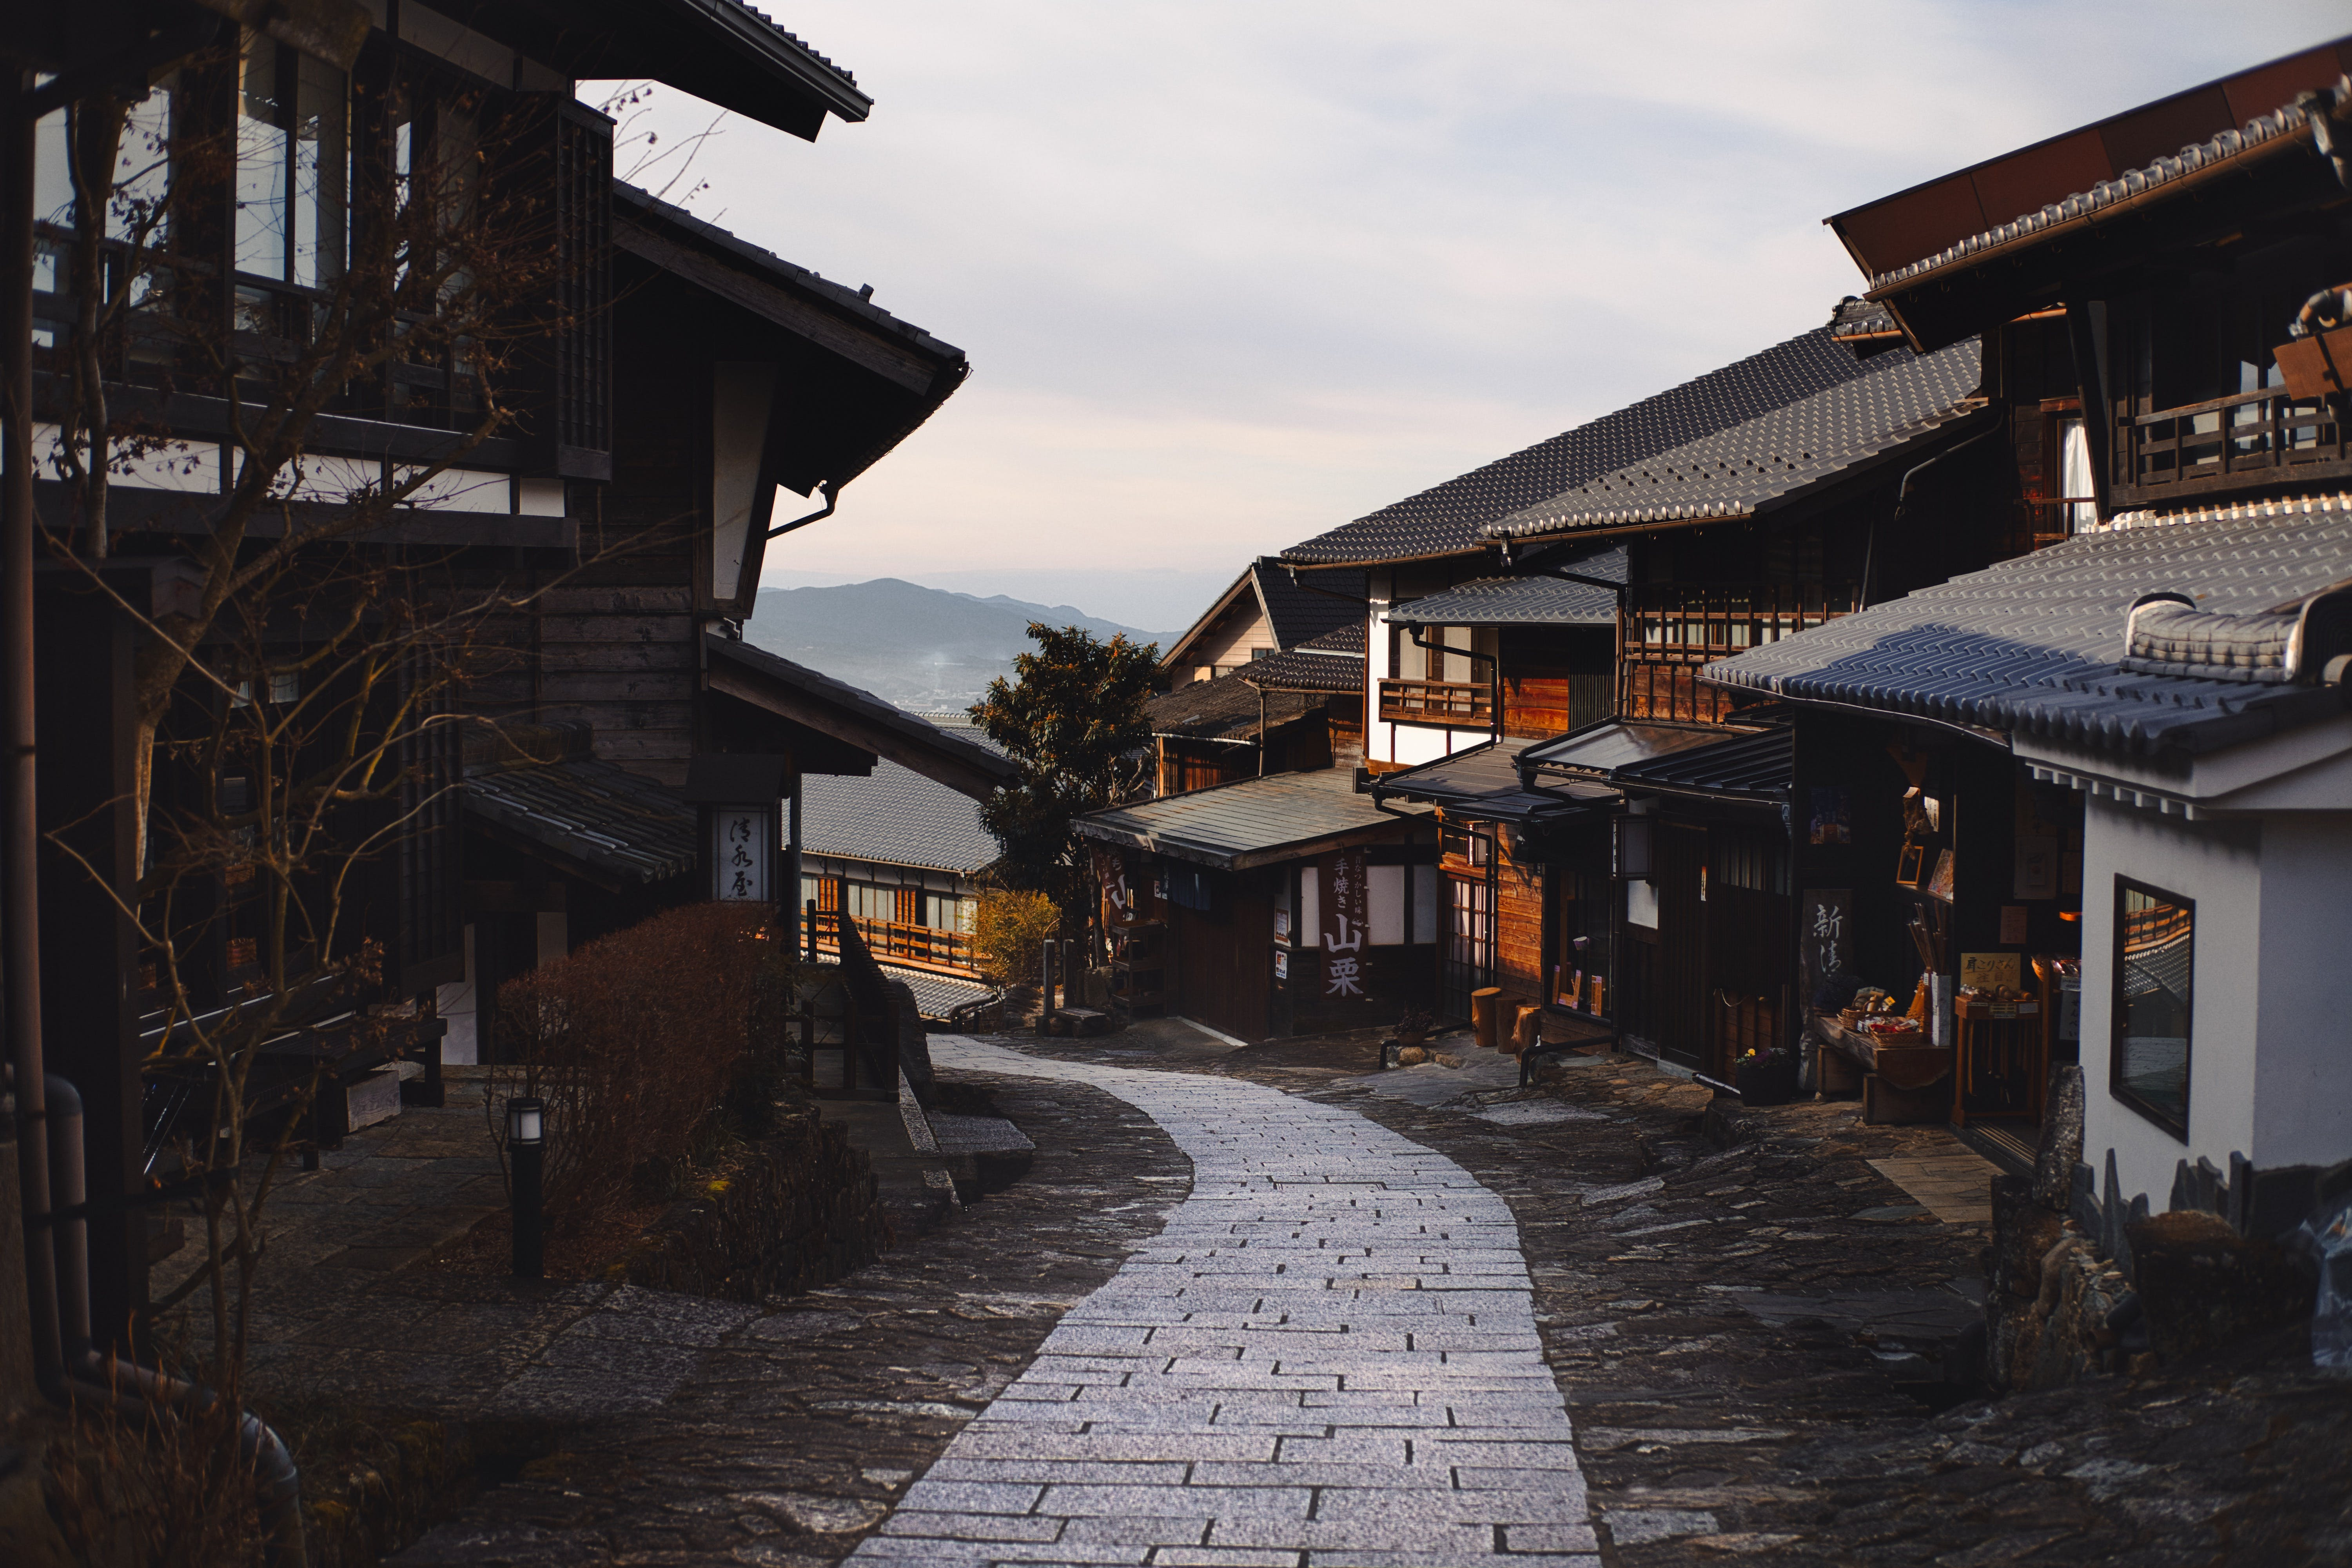 Pathway Between Traditional Houses